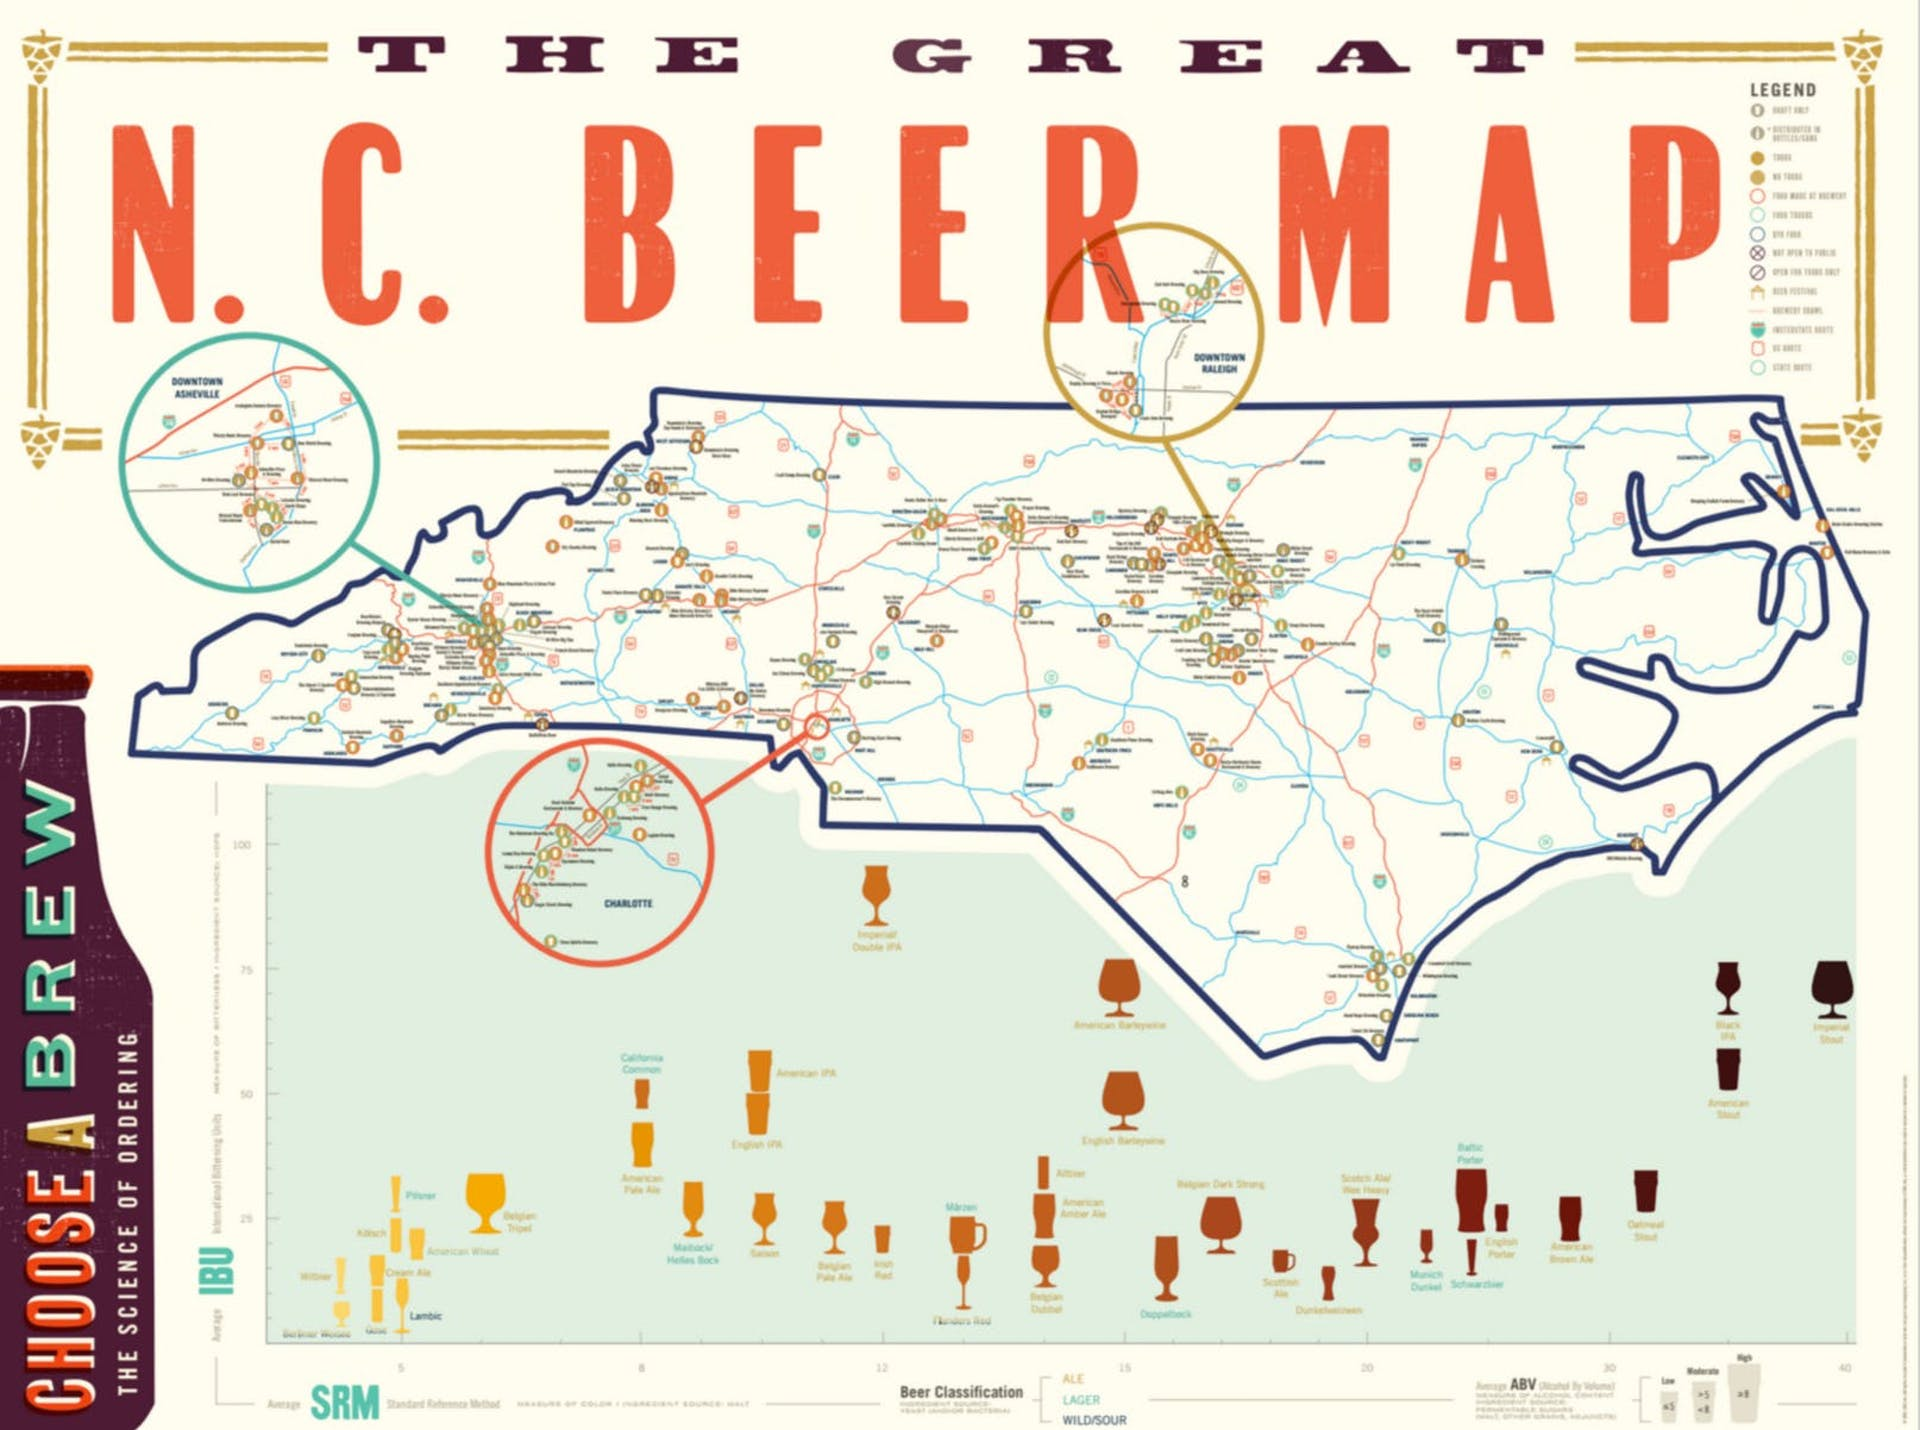 beer-map-front-s